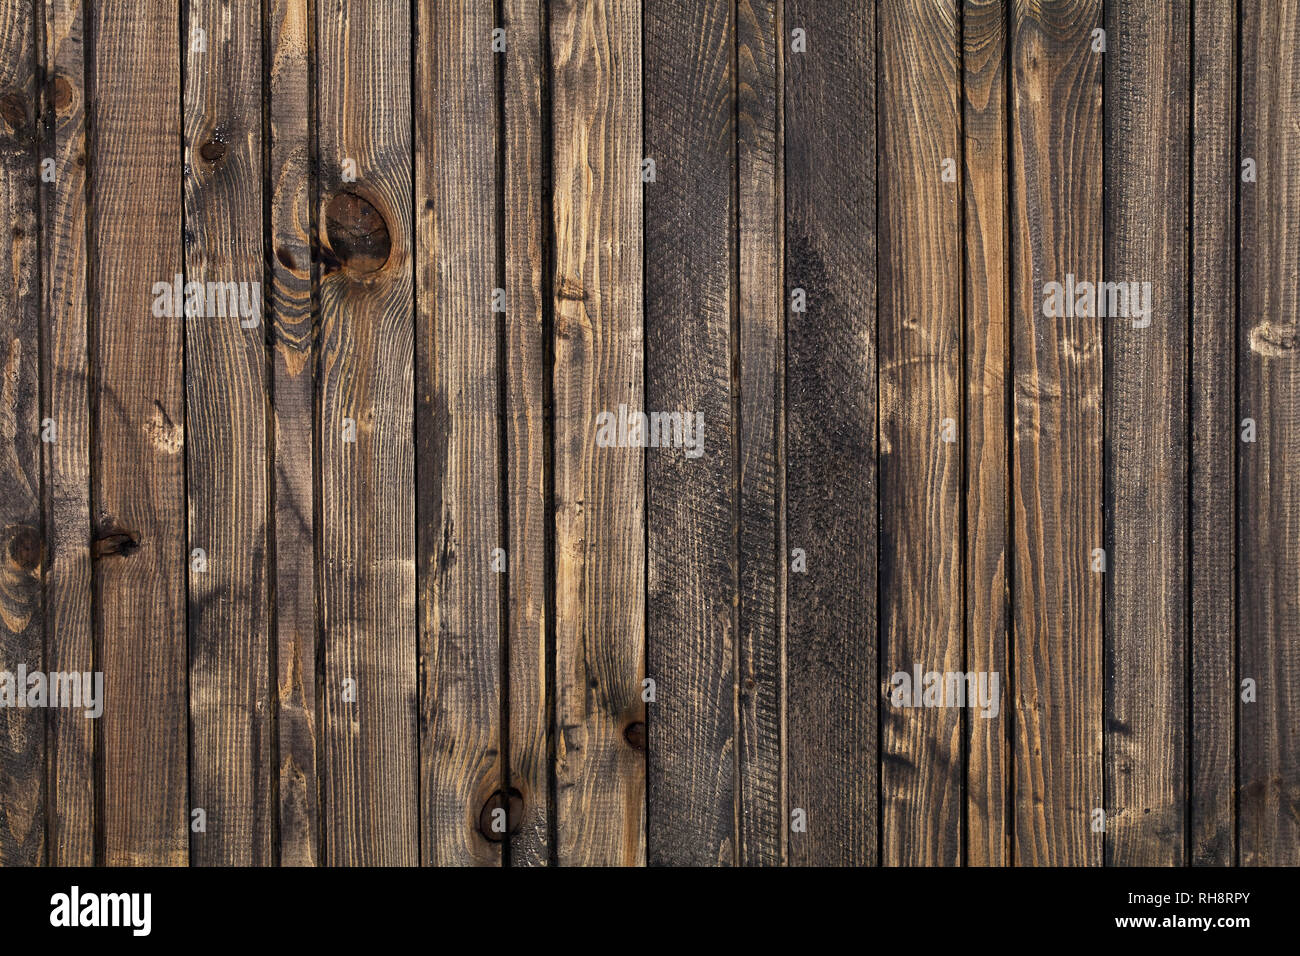 Wood Paneling Old Immagini   Wood Paneling Old Fotos Stock - Alamy 8afcbb9e87aa